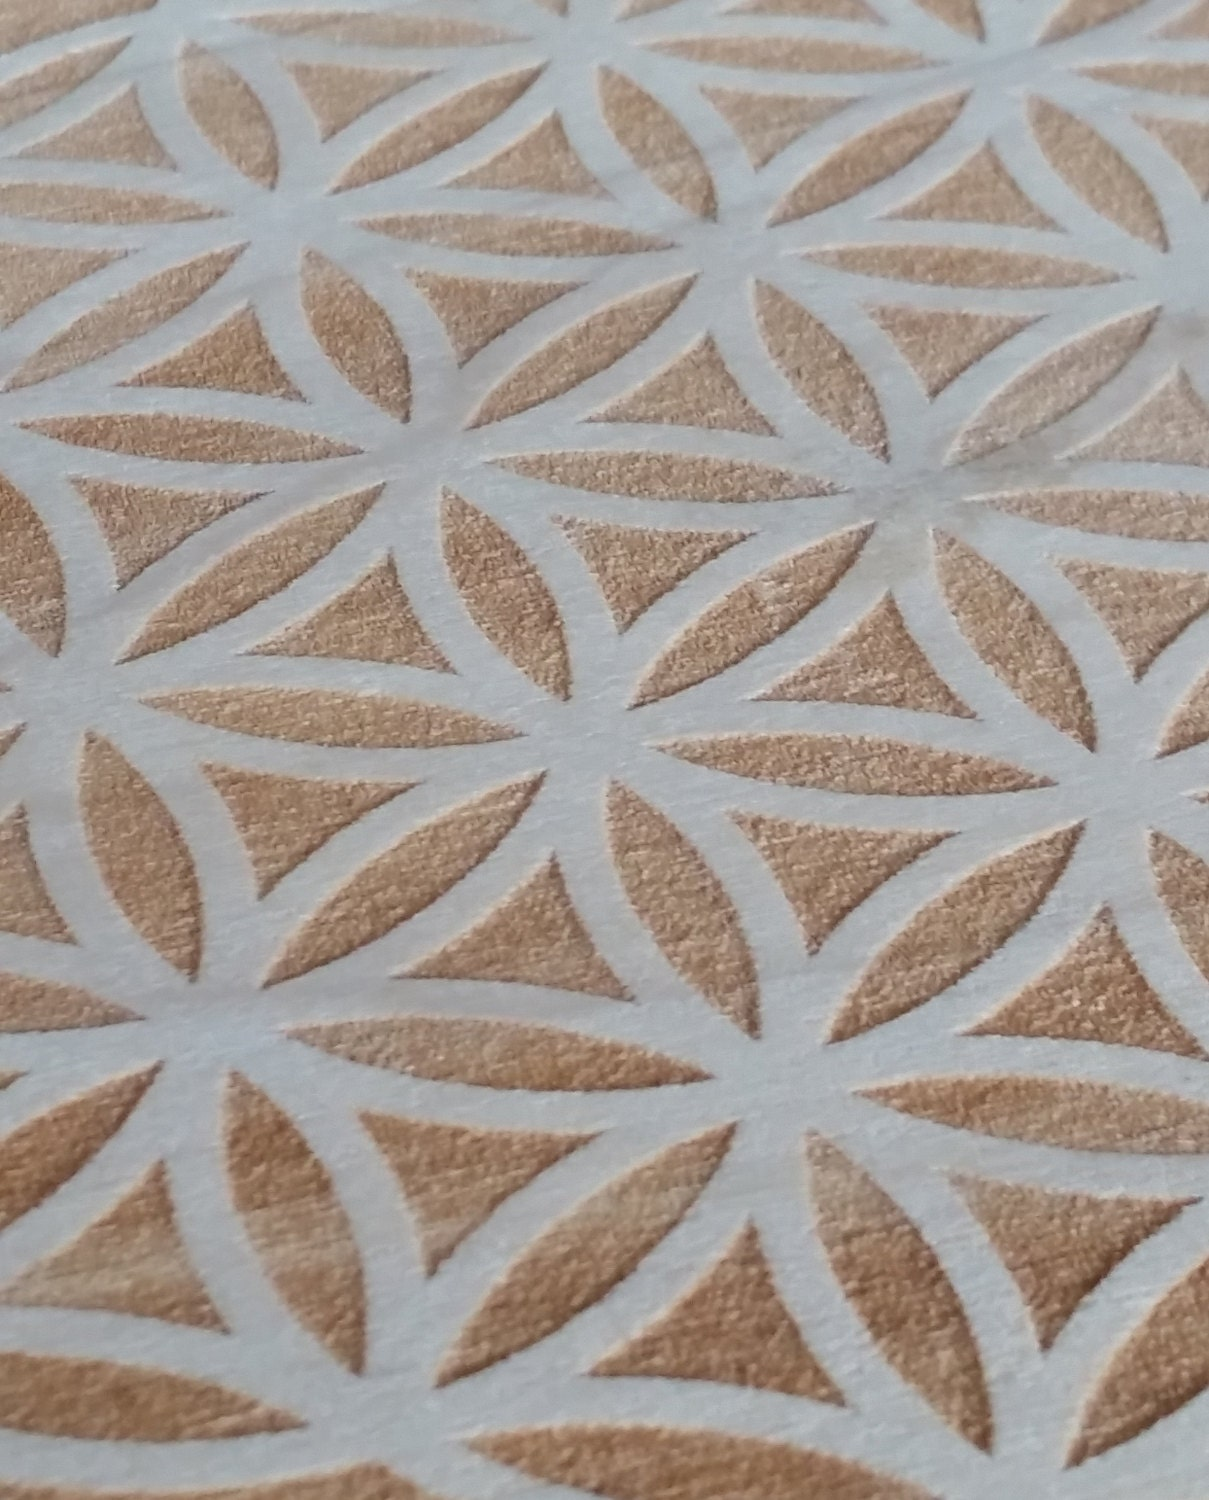 Flower of Life and Metatron's Cube, Sacred geometry grid, crystal grid, Two-Sided, 7 inch round, solid Poplar wood